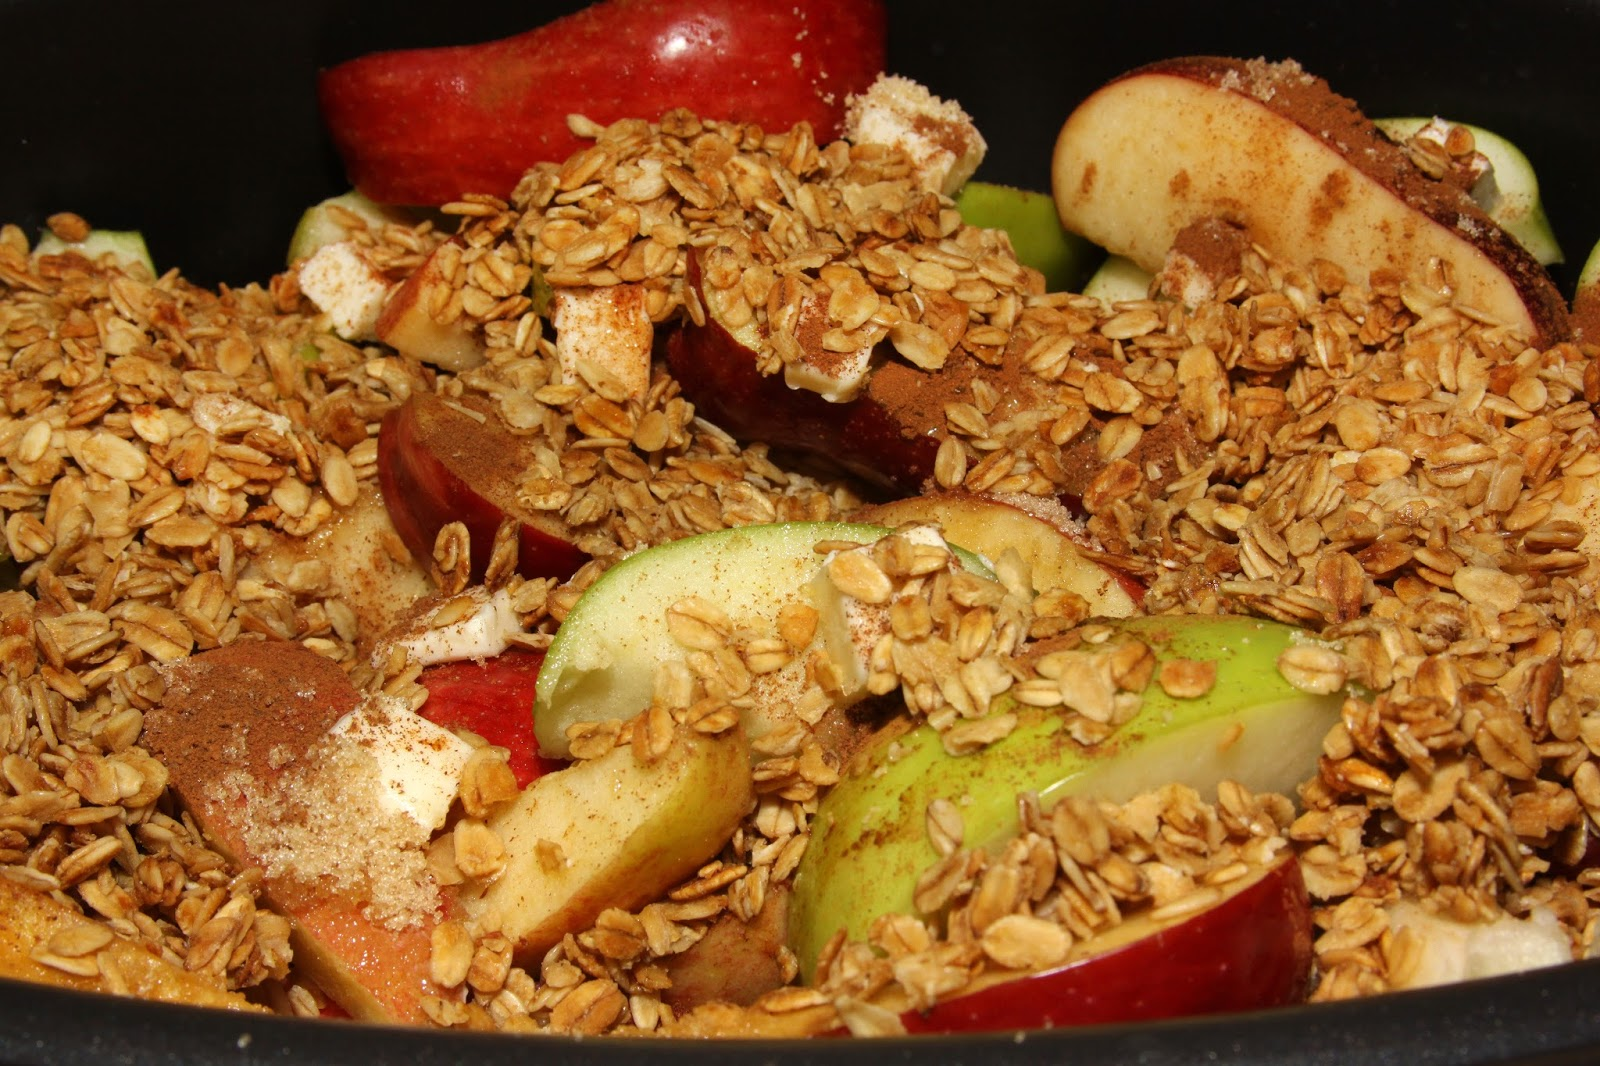 For the Love of Food: Crock-Pot Overnight Breakfast Apple Crisp